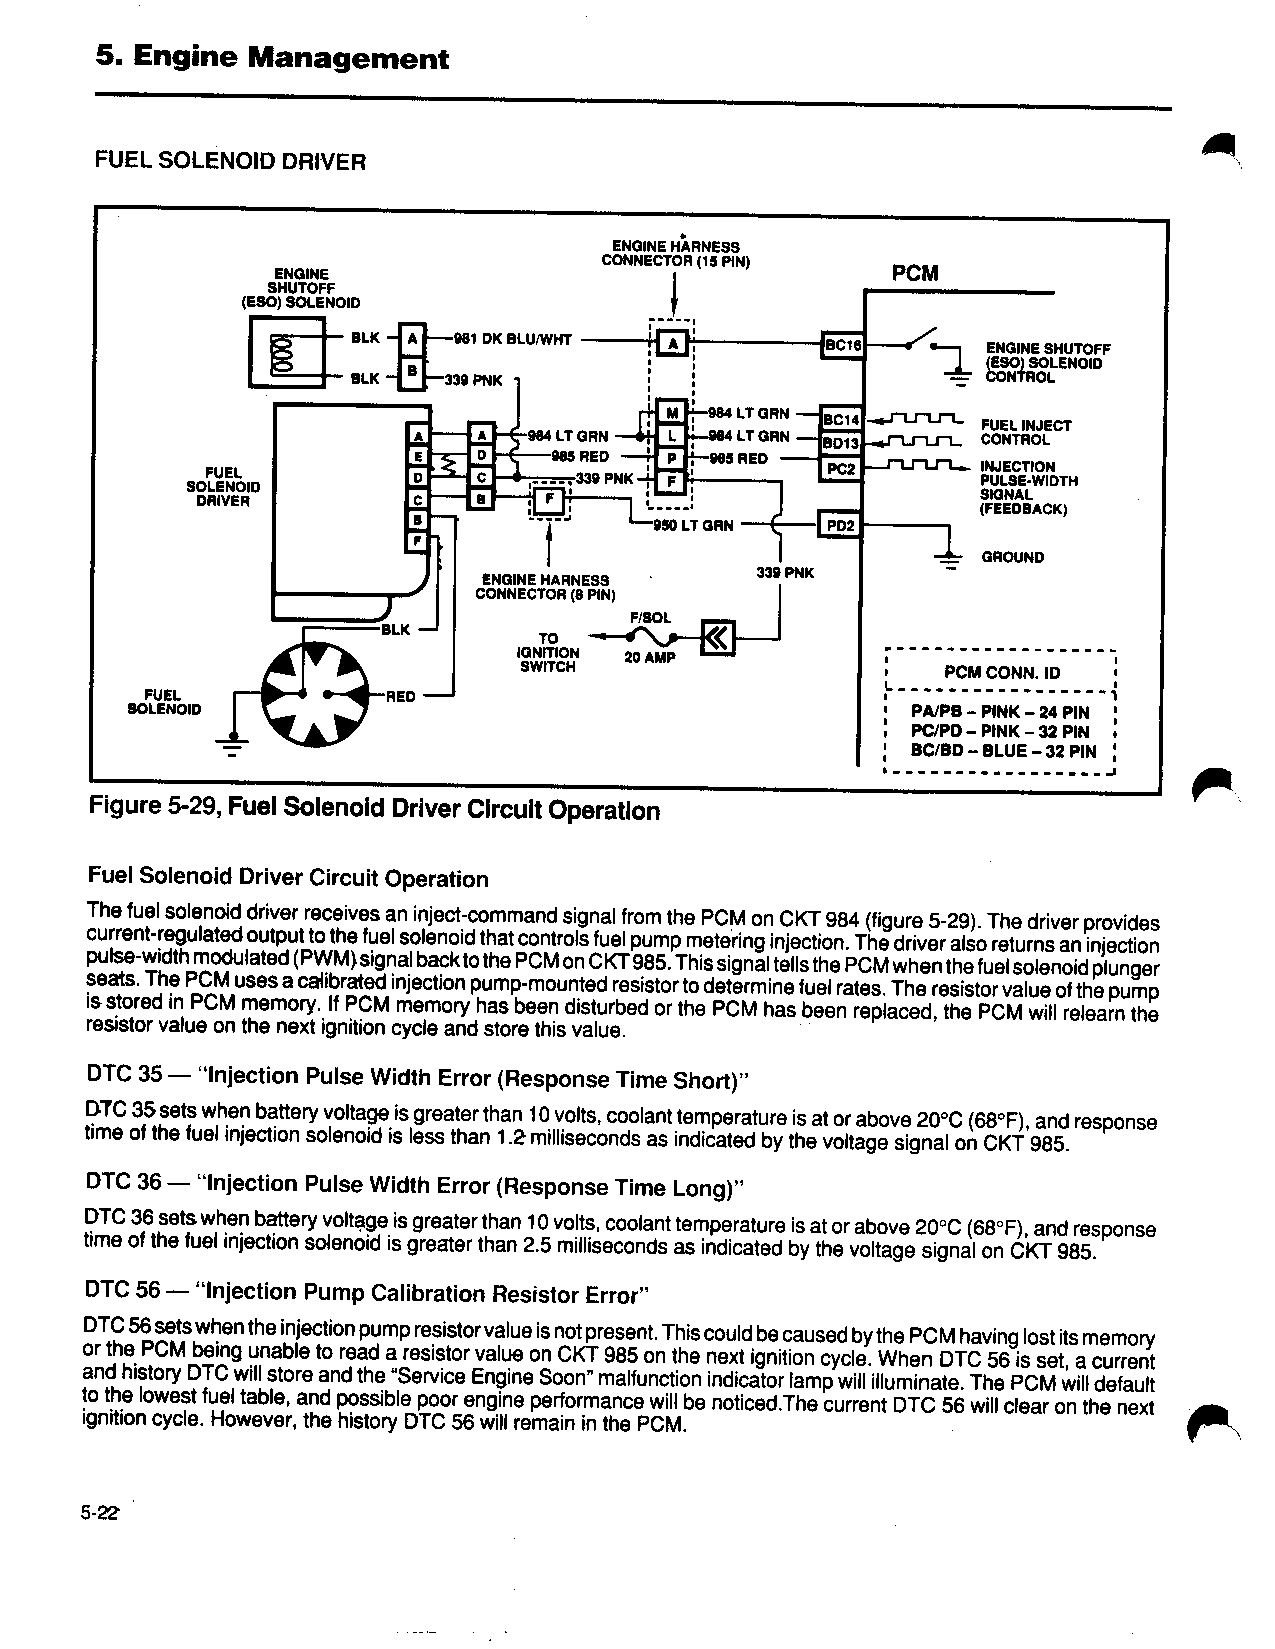 6 2 diesel wiring diagram frog dissection organs 5 injection pump